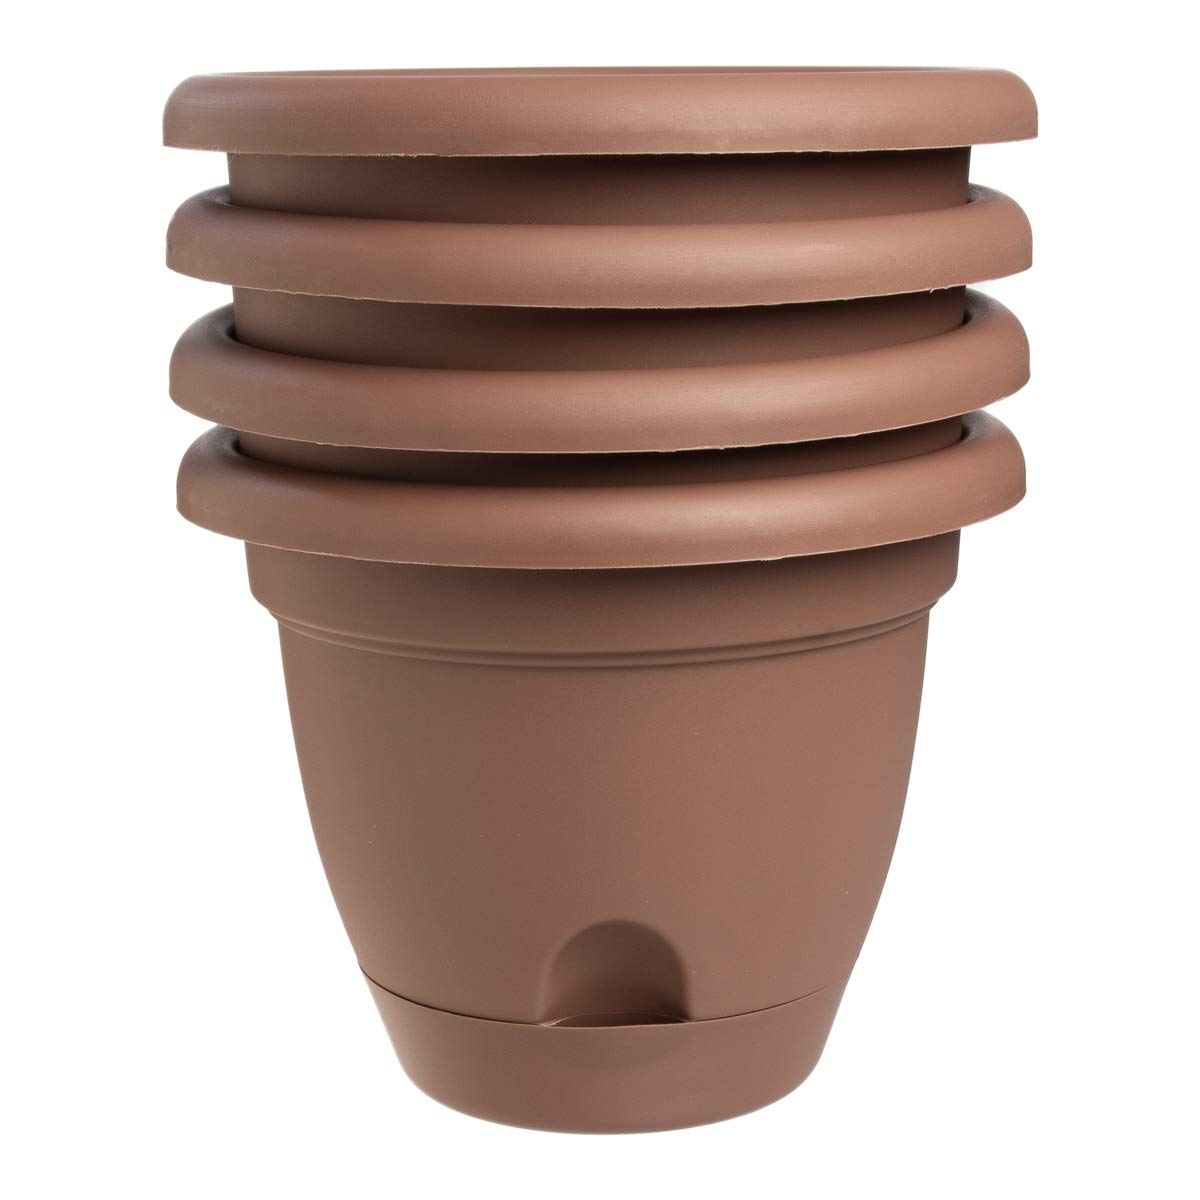 Bloem 4 Pack Lucca Self Watering Planter Pot Plastic Plant Pots Indoor 6 Inch Outdoor Planters with Drainage